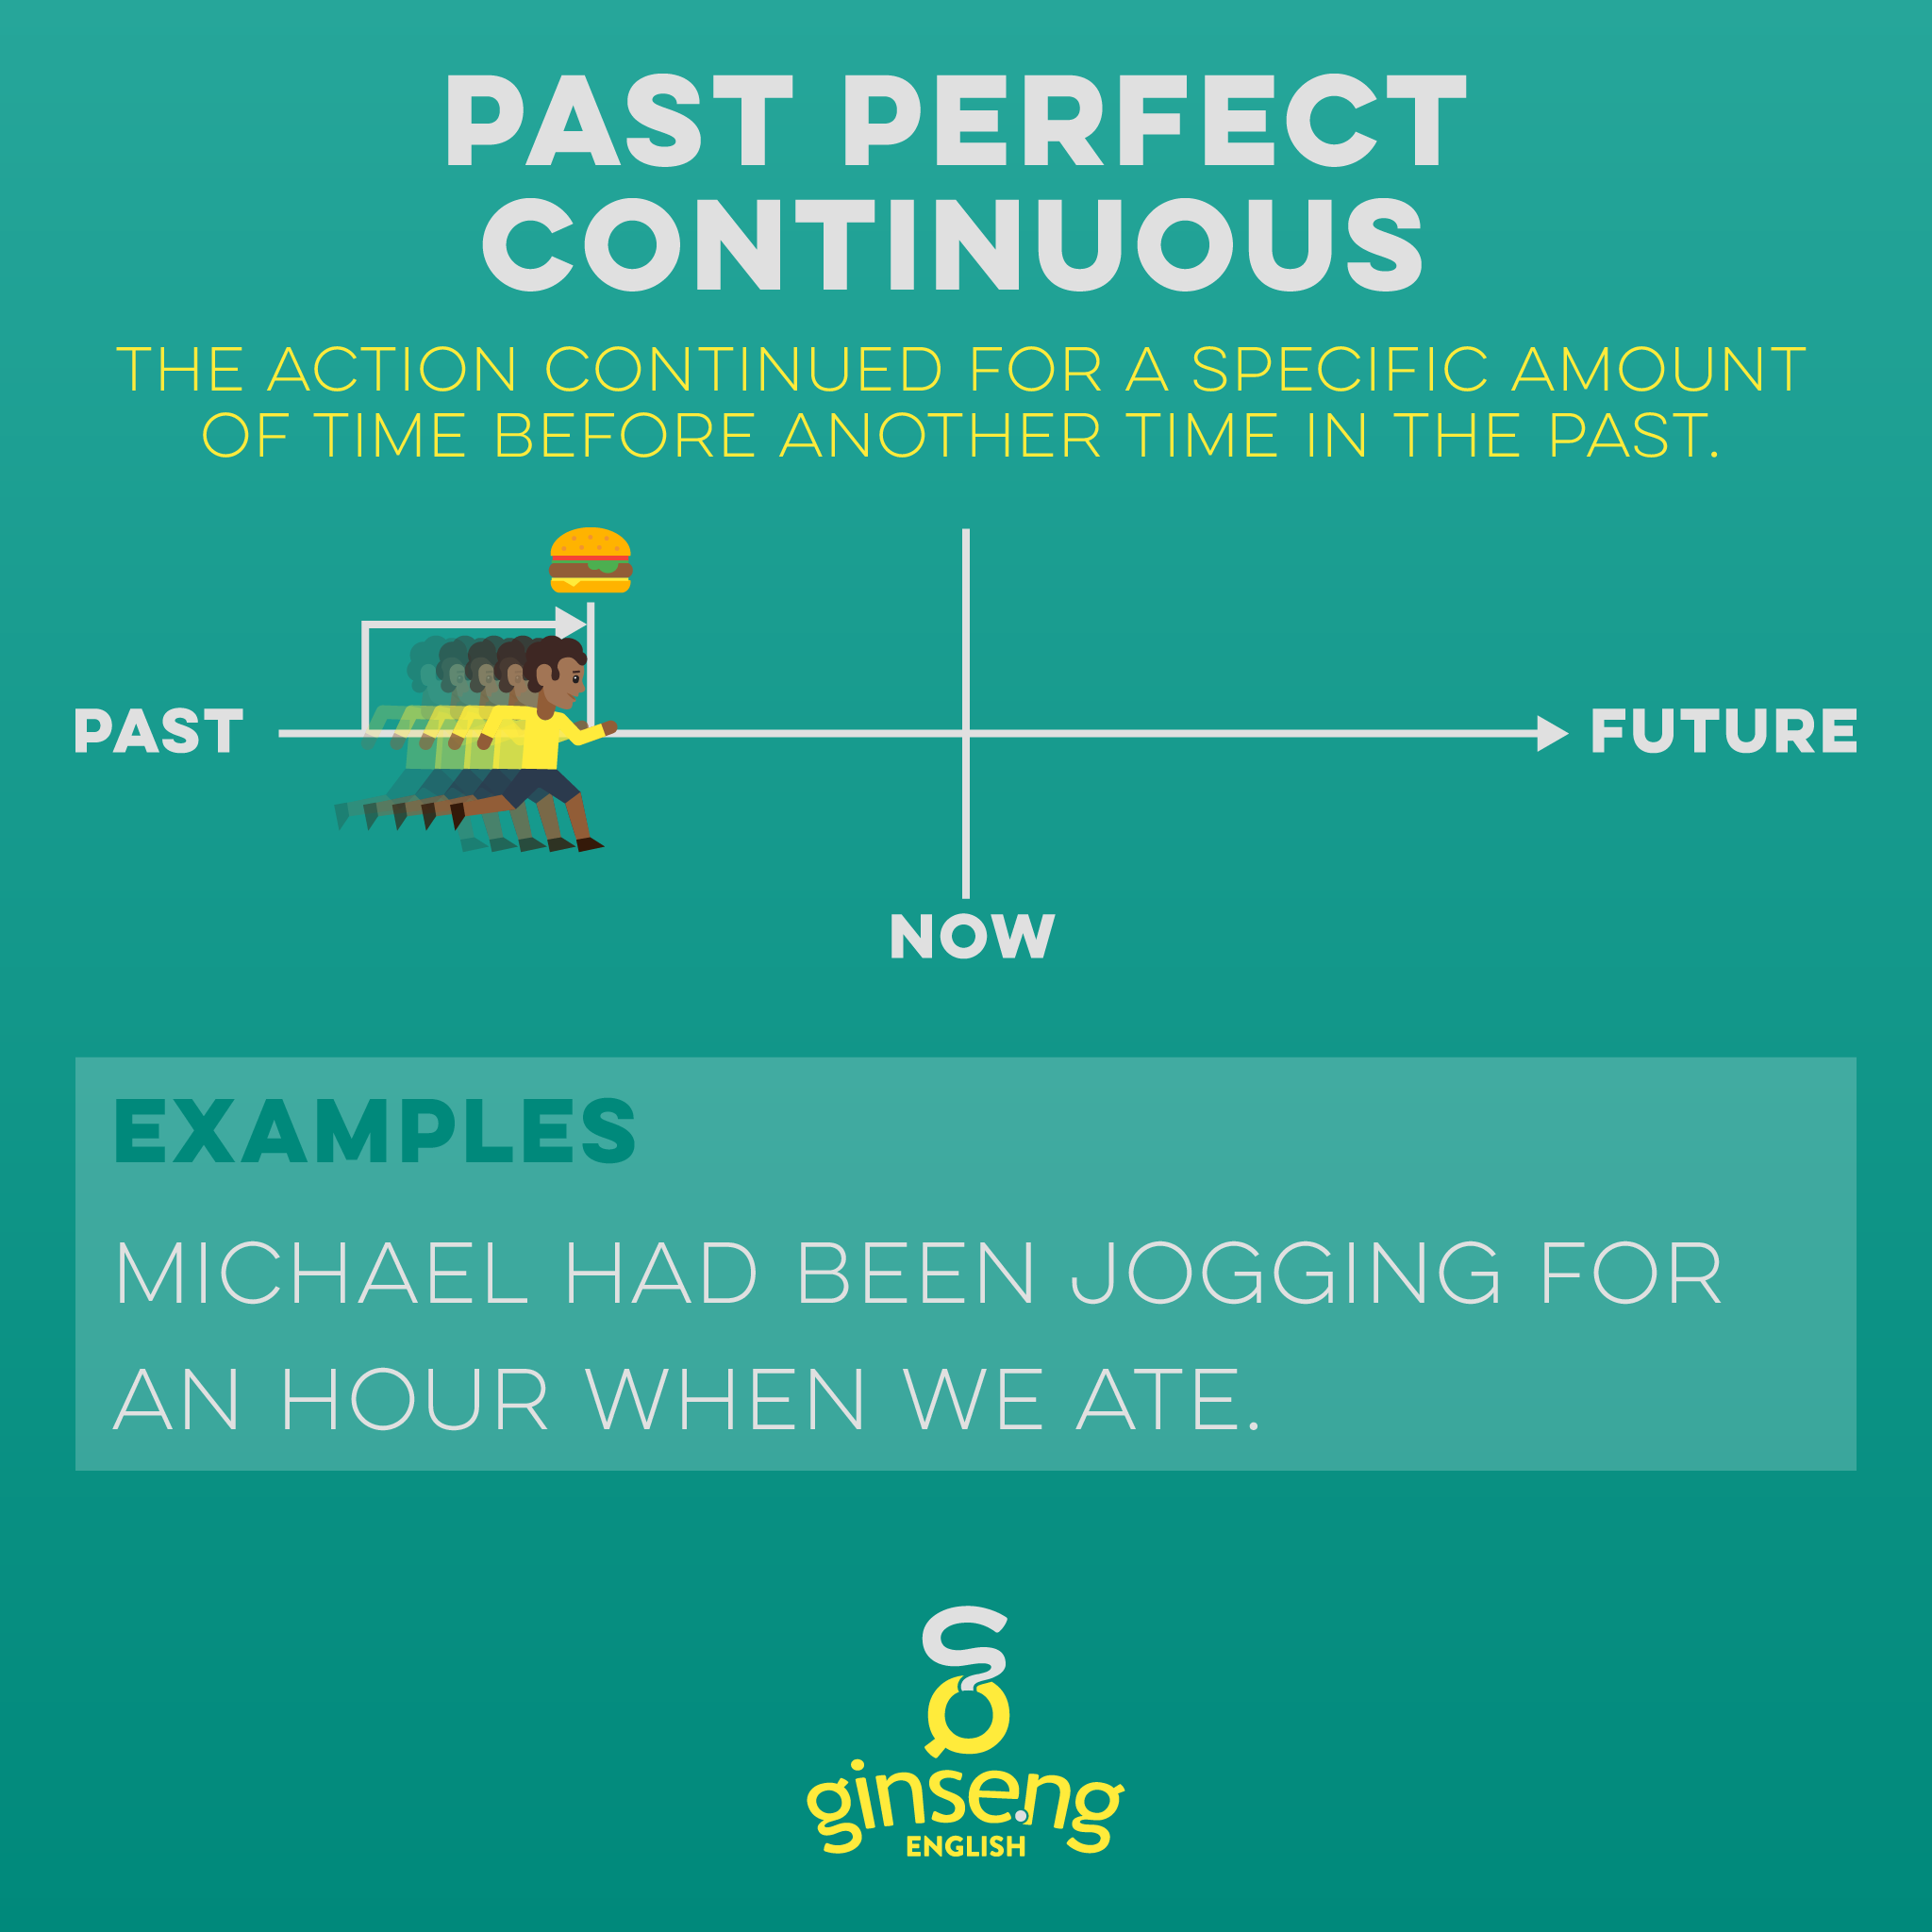 Past perfect tense uses the verb to have